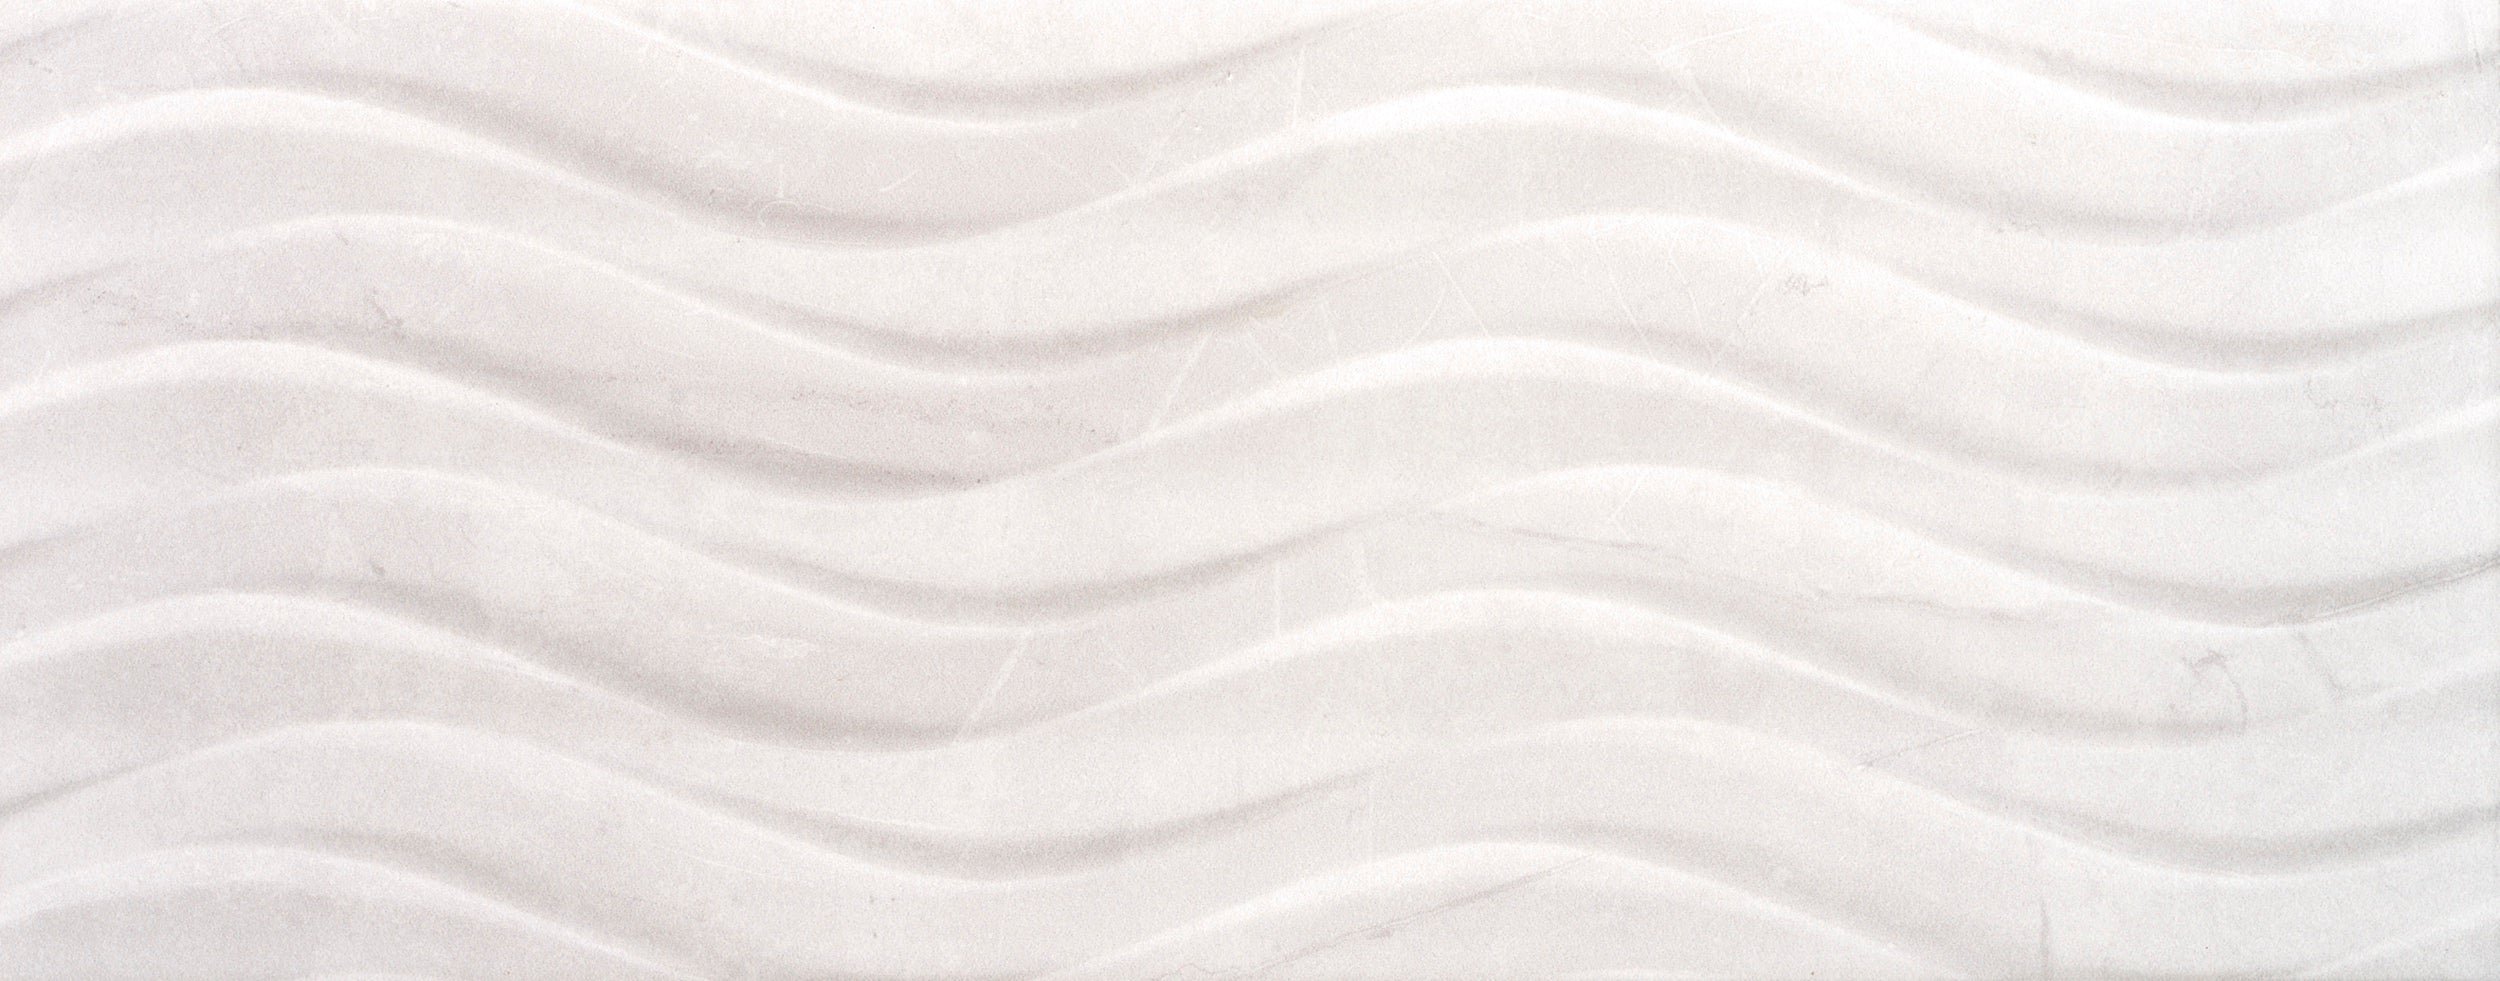 Buckingham Bend Blanco Decor - Faiola Tile